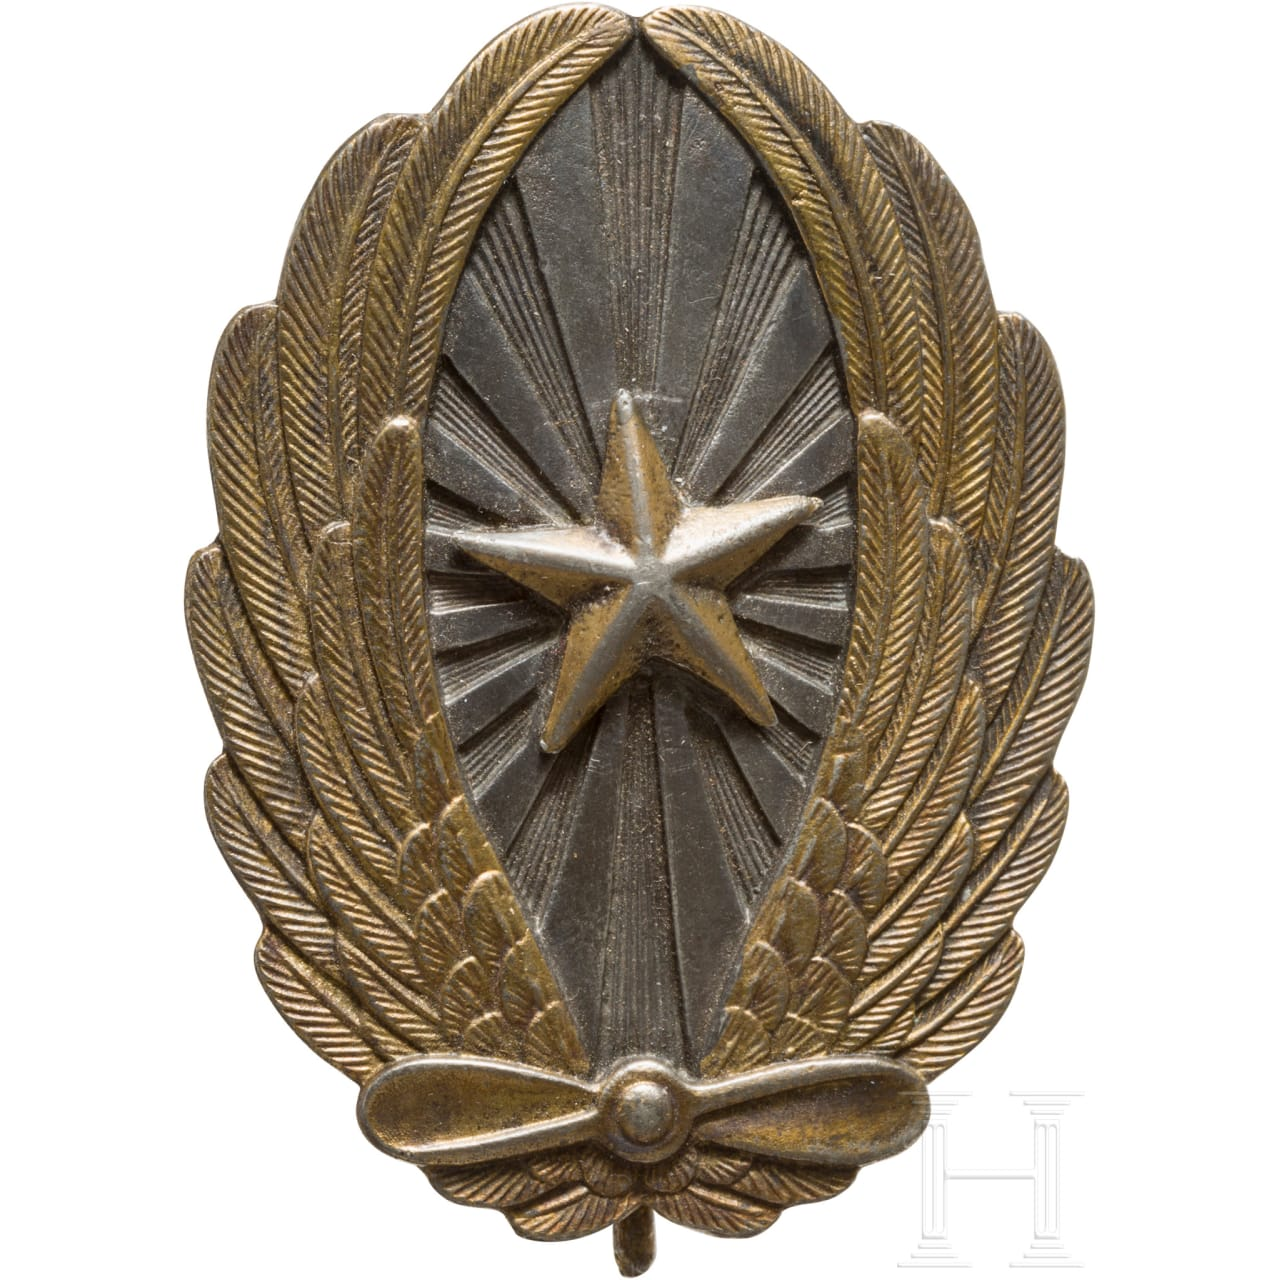 Flight badge for officers of the army, 2nd world war